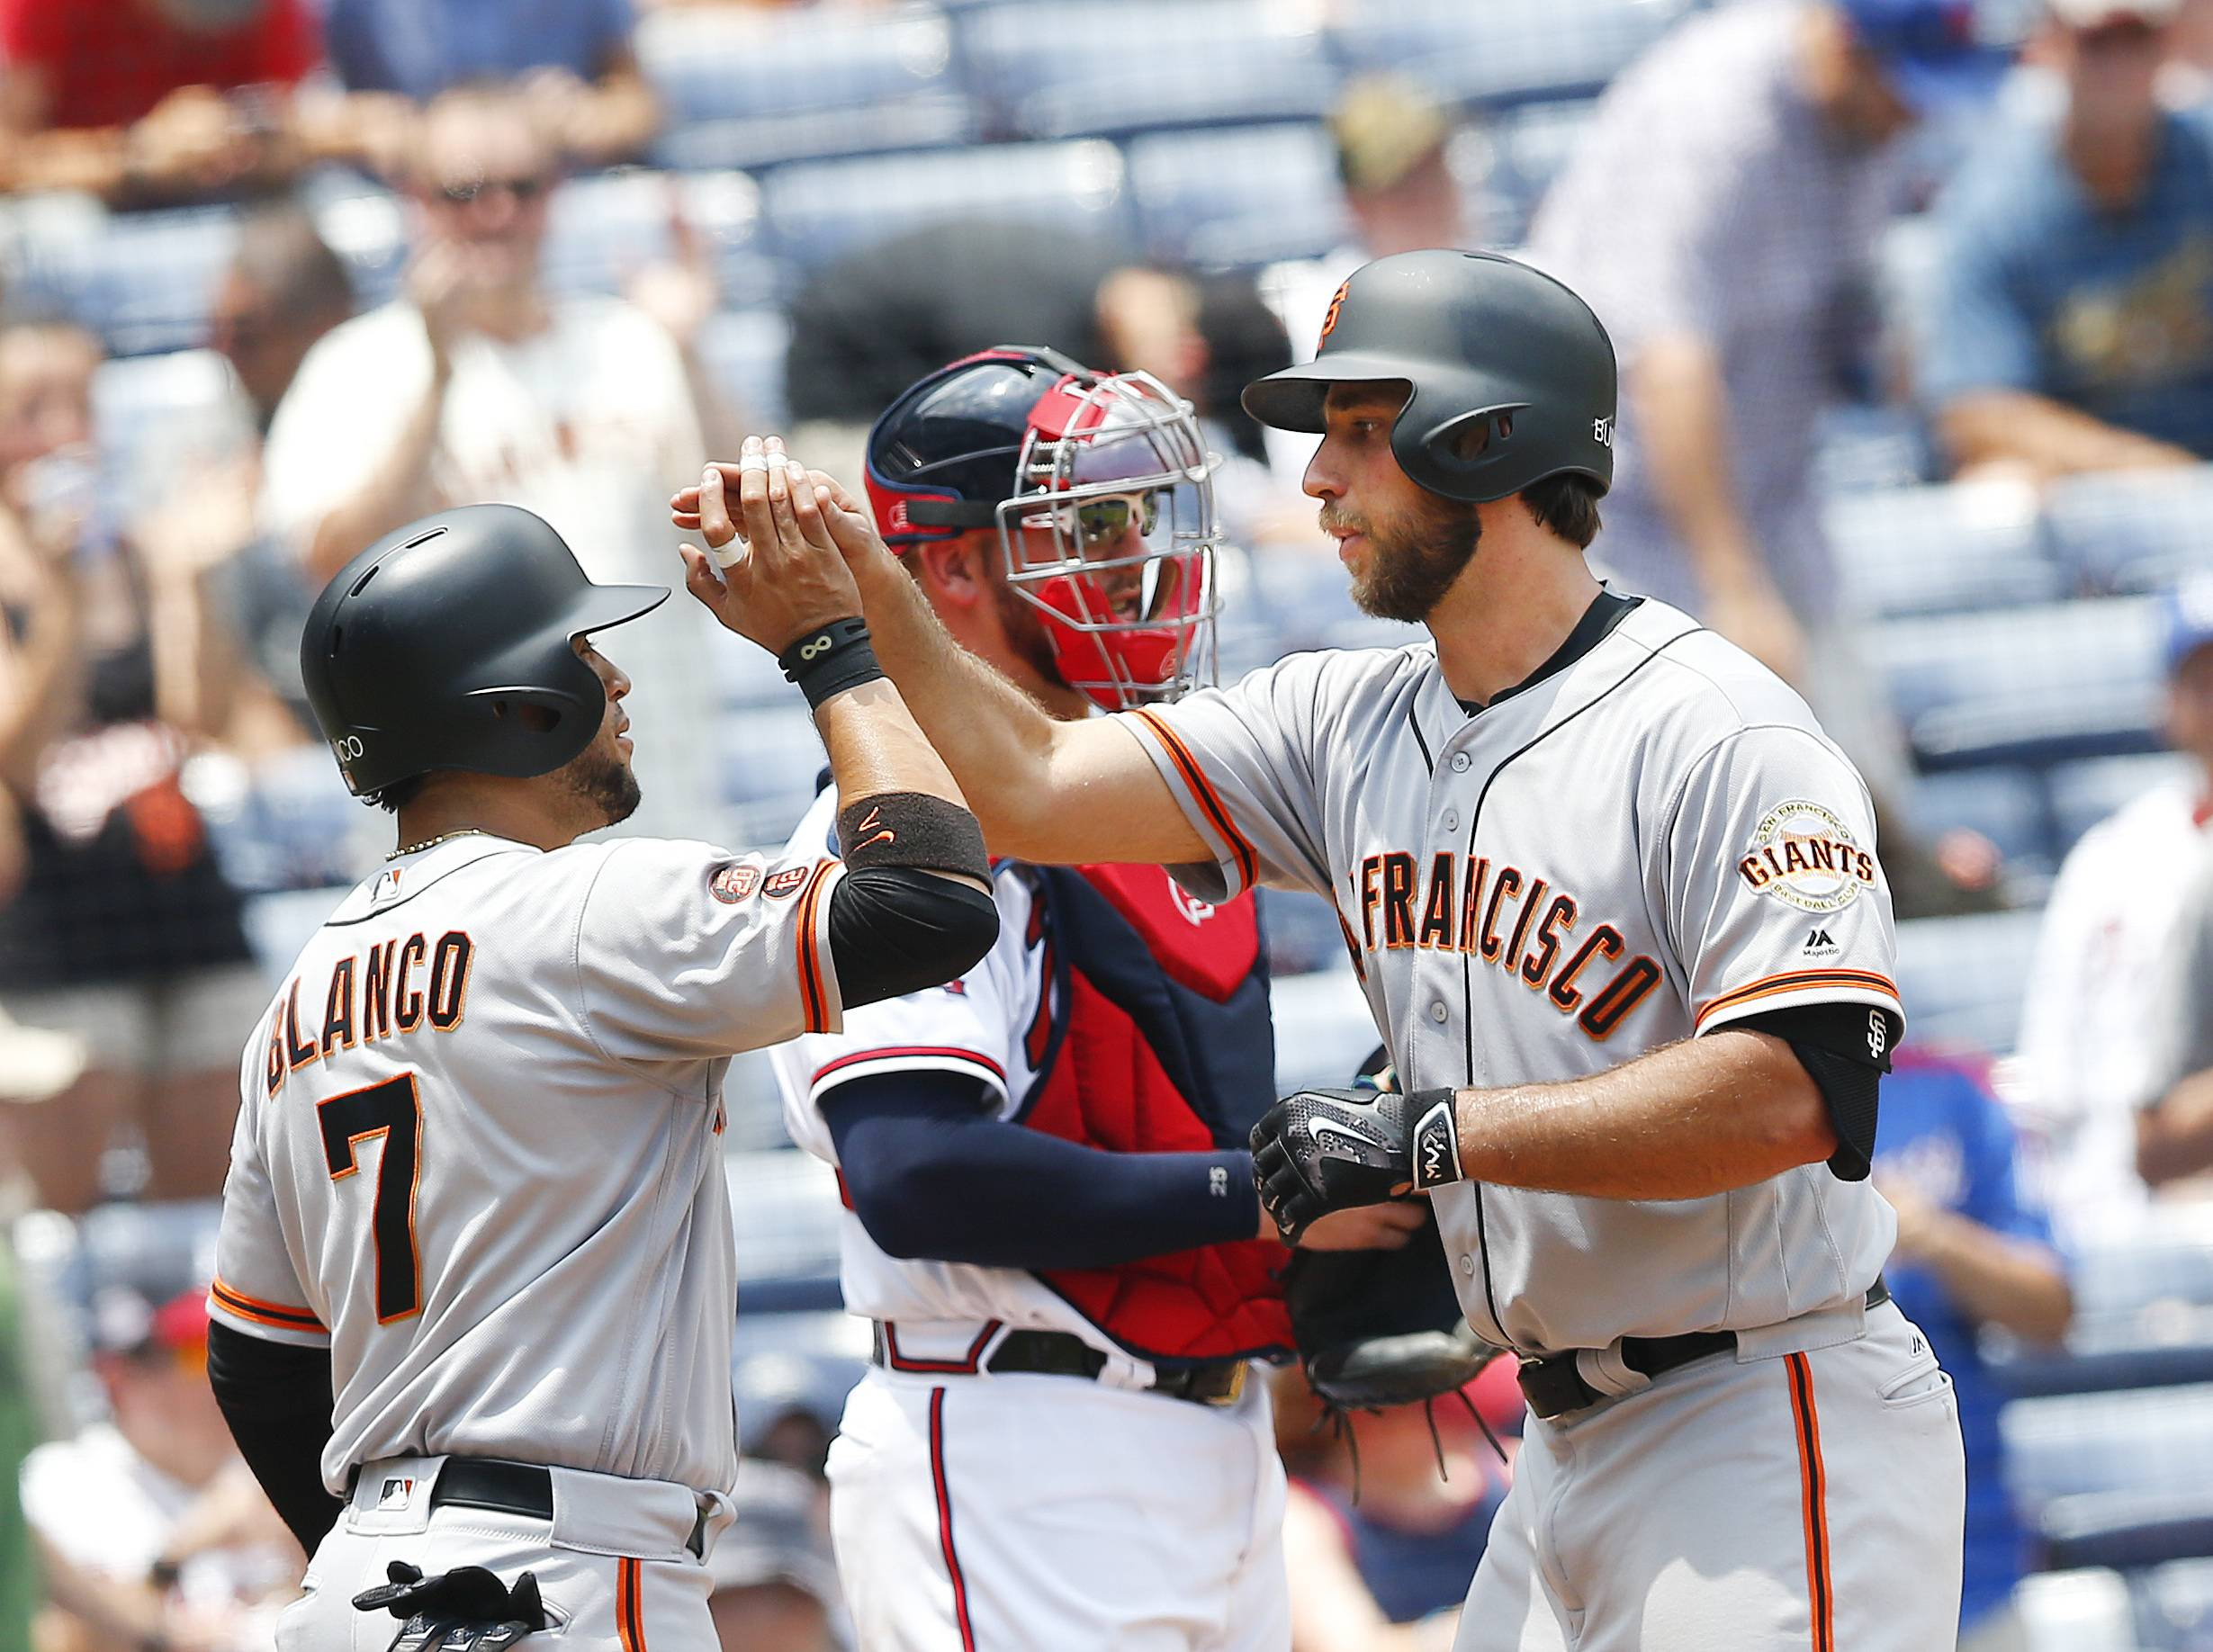 San Francisco Giants starting pitcher Madison Bumgarner, right, celebrates with Gregor Blanco (7) after hitting a two-run home run as Atlanta Braves catcher Tyler Flowers looks on in the background in the fifth inning of a baseball game Thursday, June 2, 2016, in Atlanta. (AP Photo/John Bazemore)